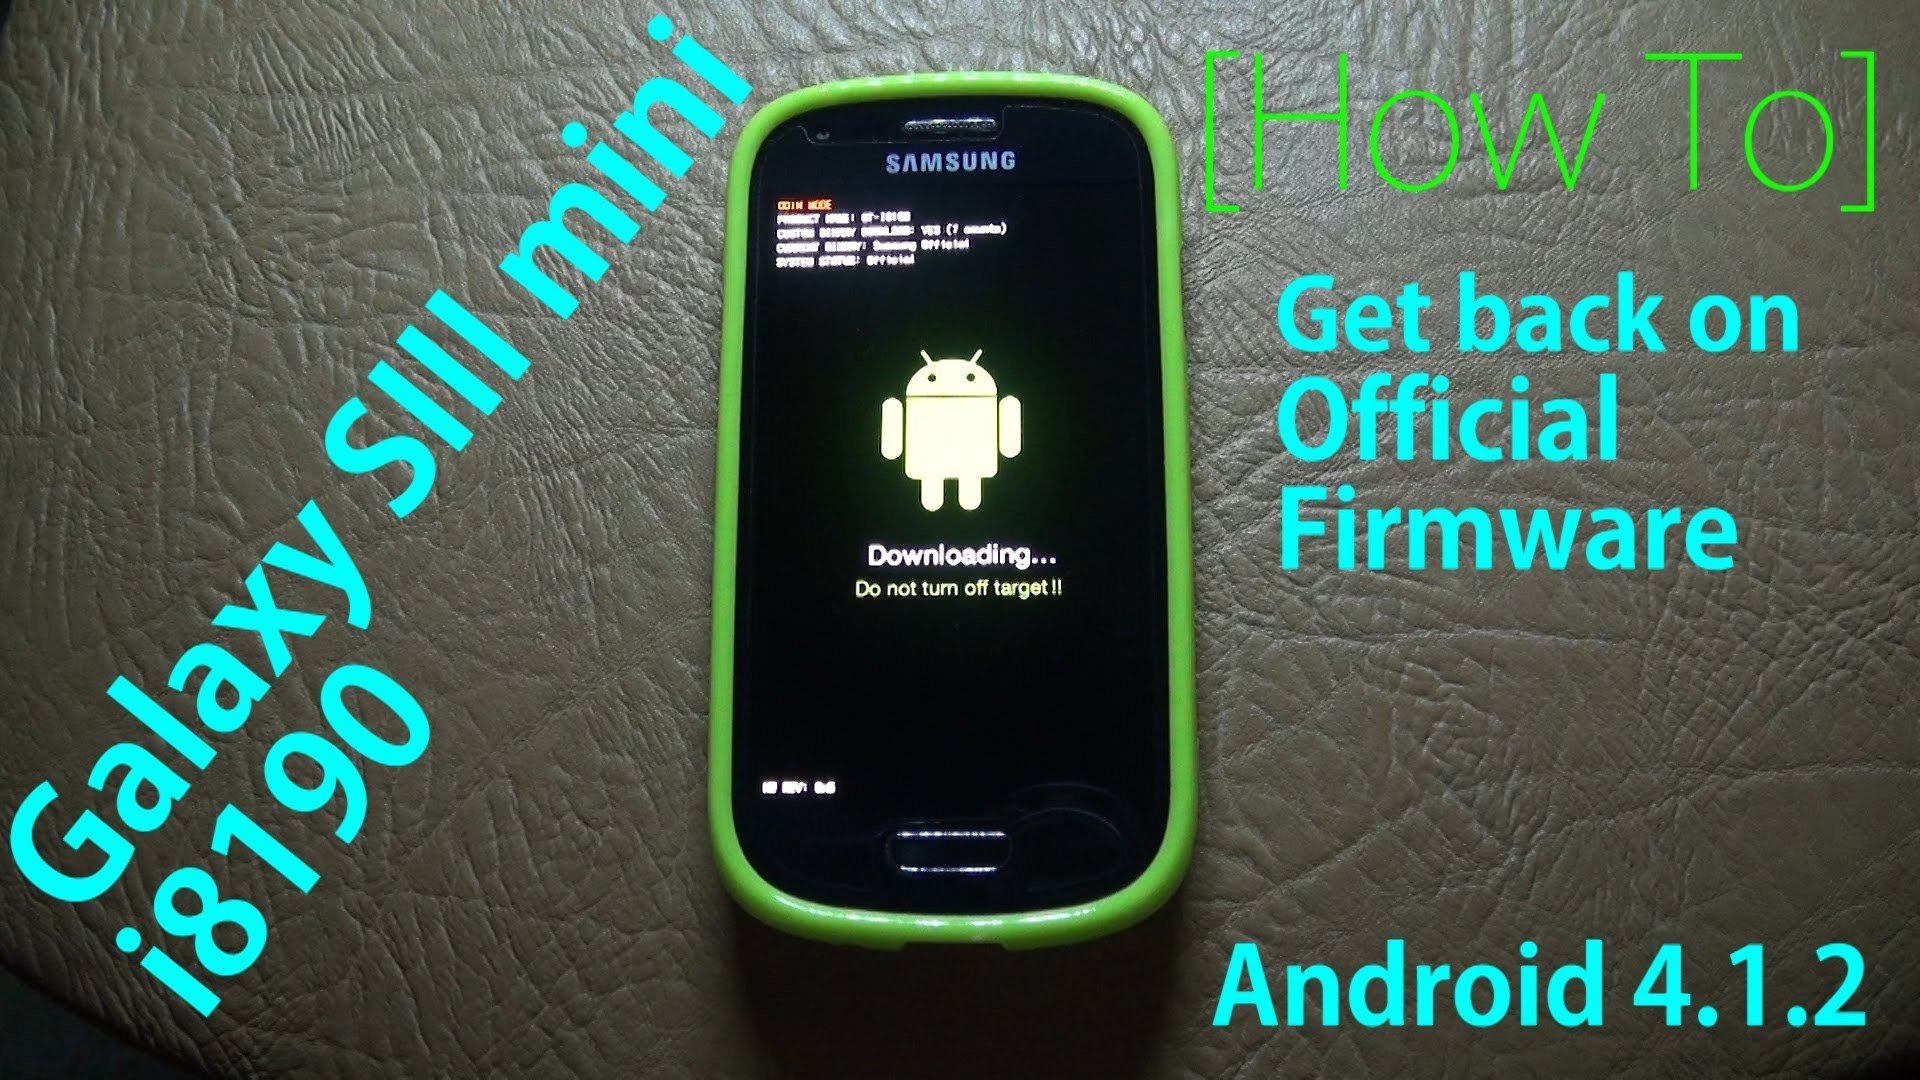 [Galaxy S3 mini i8190] Install Official Firmware! – YouTube